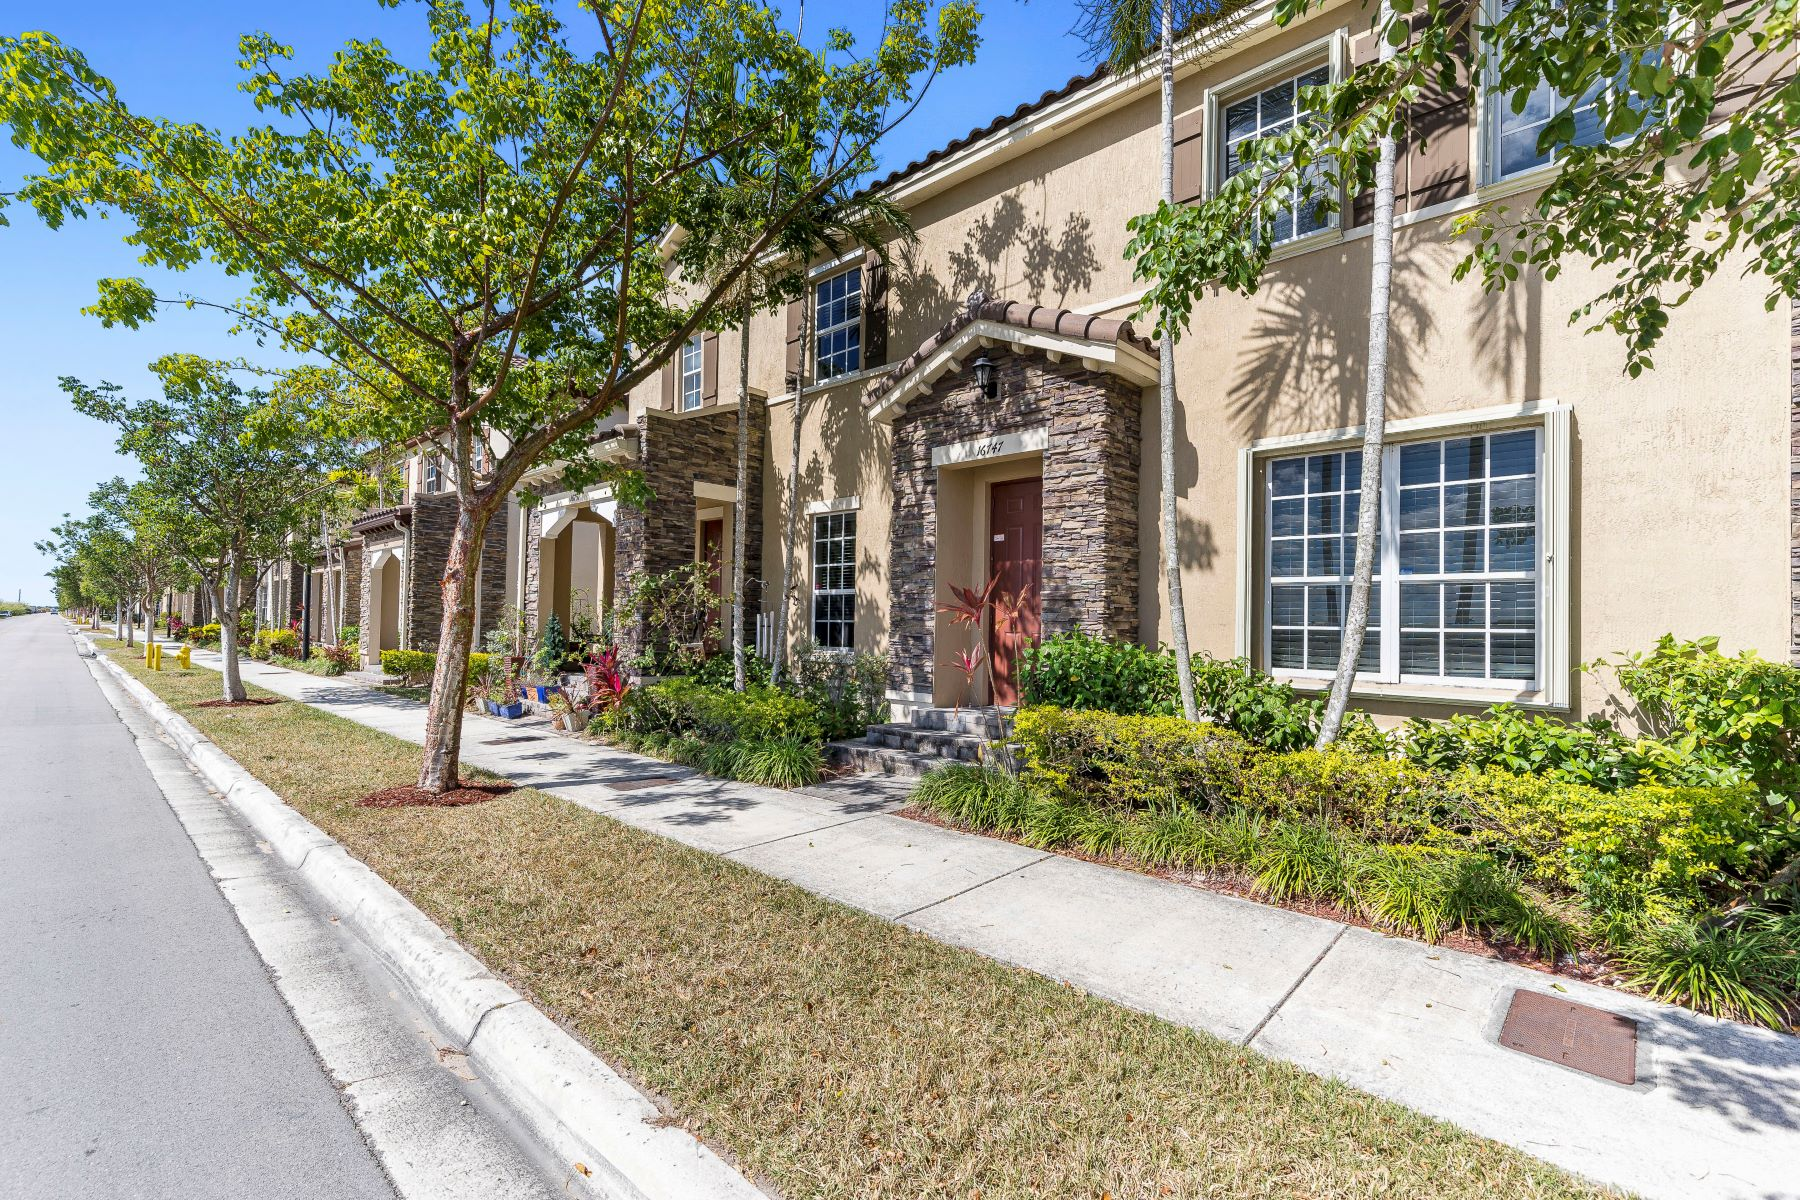 Single Family Home for Sale at 16747 Sw 96th St 16747 Sw 96th St 16747, Miami, Florida, 33196 United States